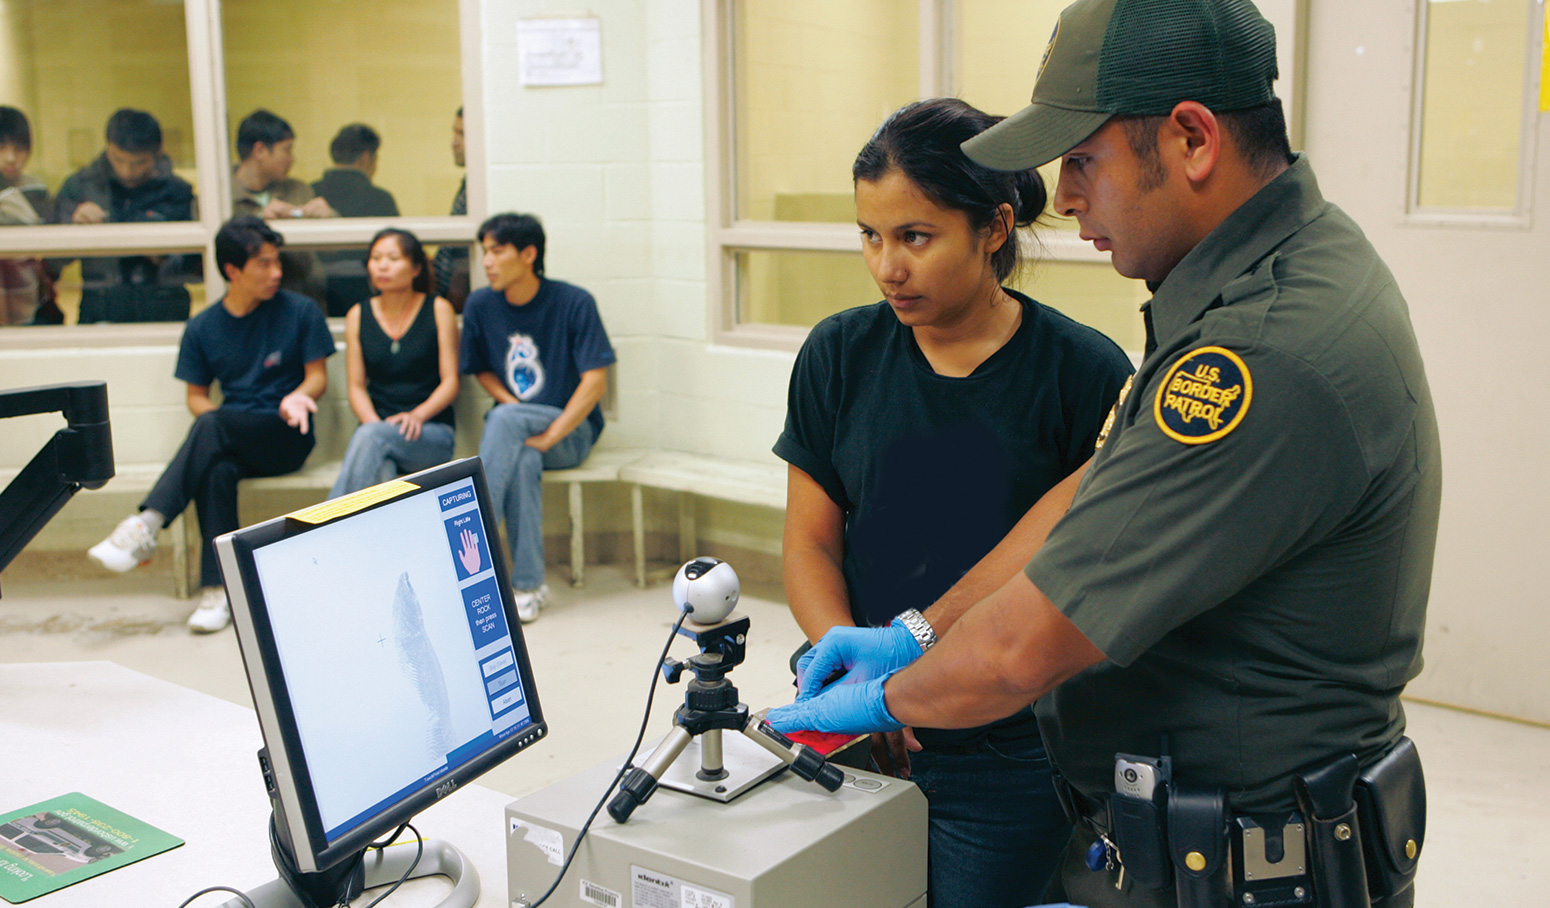 Woman's fingerprints being captured digitally by border patrol agent